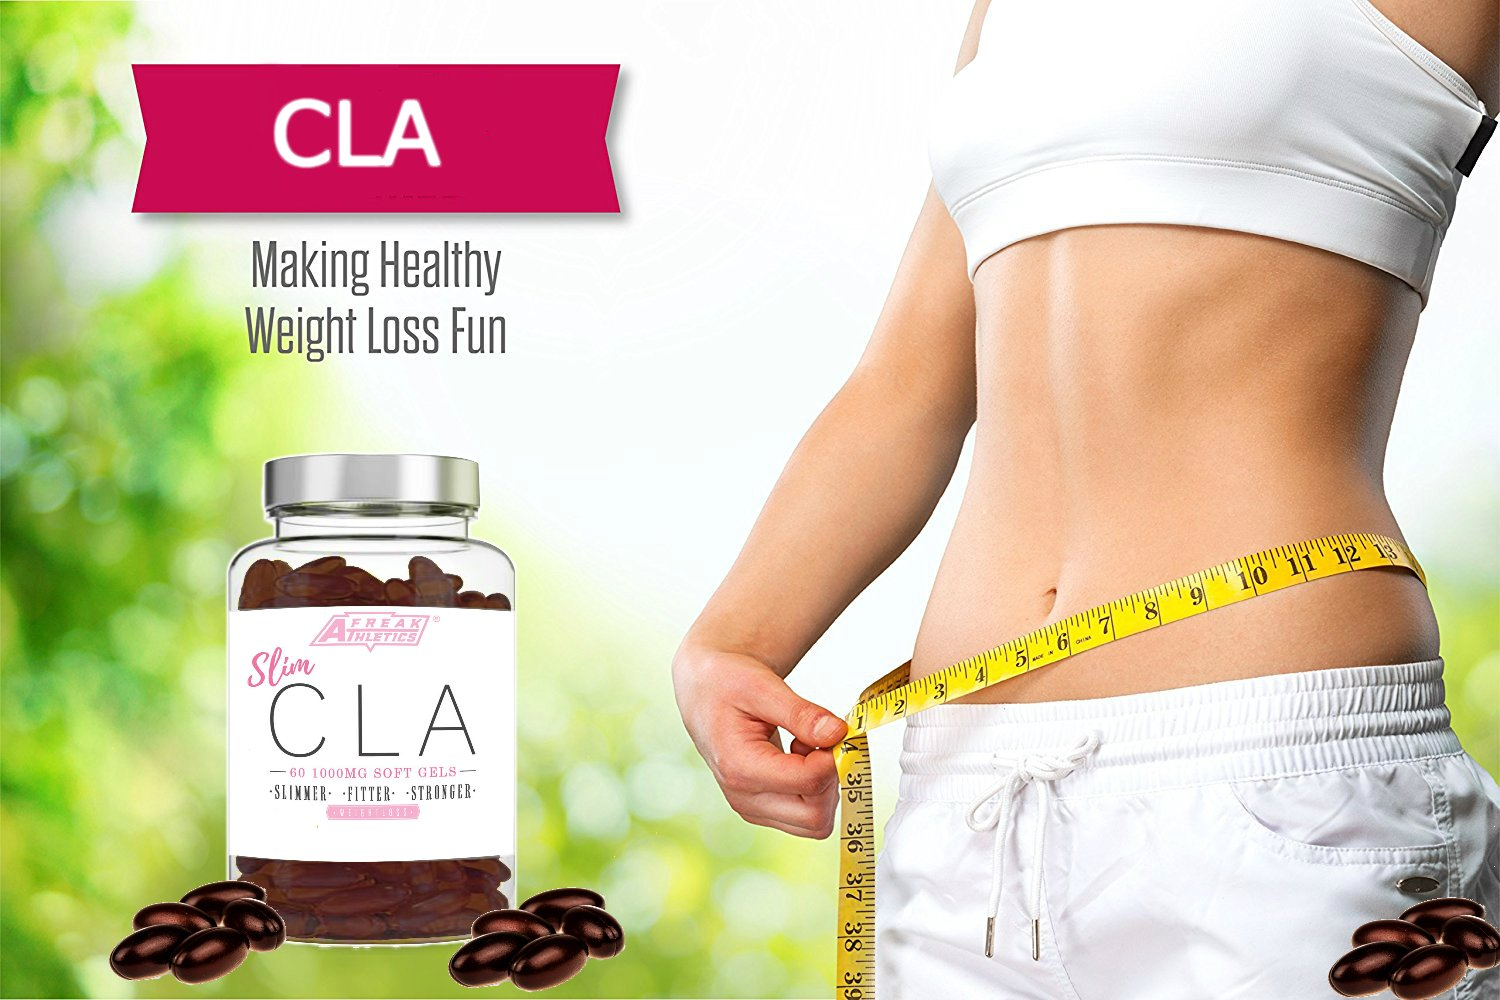 71Ist6tn7nL - Sim CLA - 60 x 1000mg Maximum Strength CLA Capsules - CLA Tablets To Help Boost Metabolism, Blast Stubborn Body Fat & Support Overall Health - Made in the UK - Includes FREE Fat Buster Workout Program